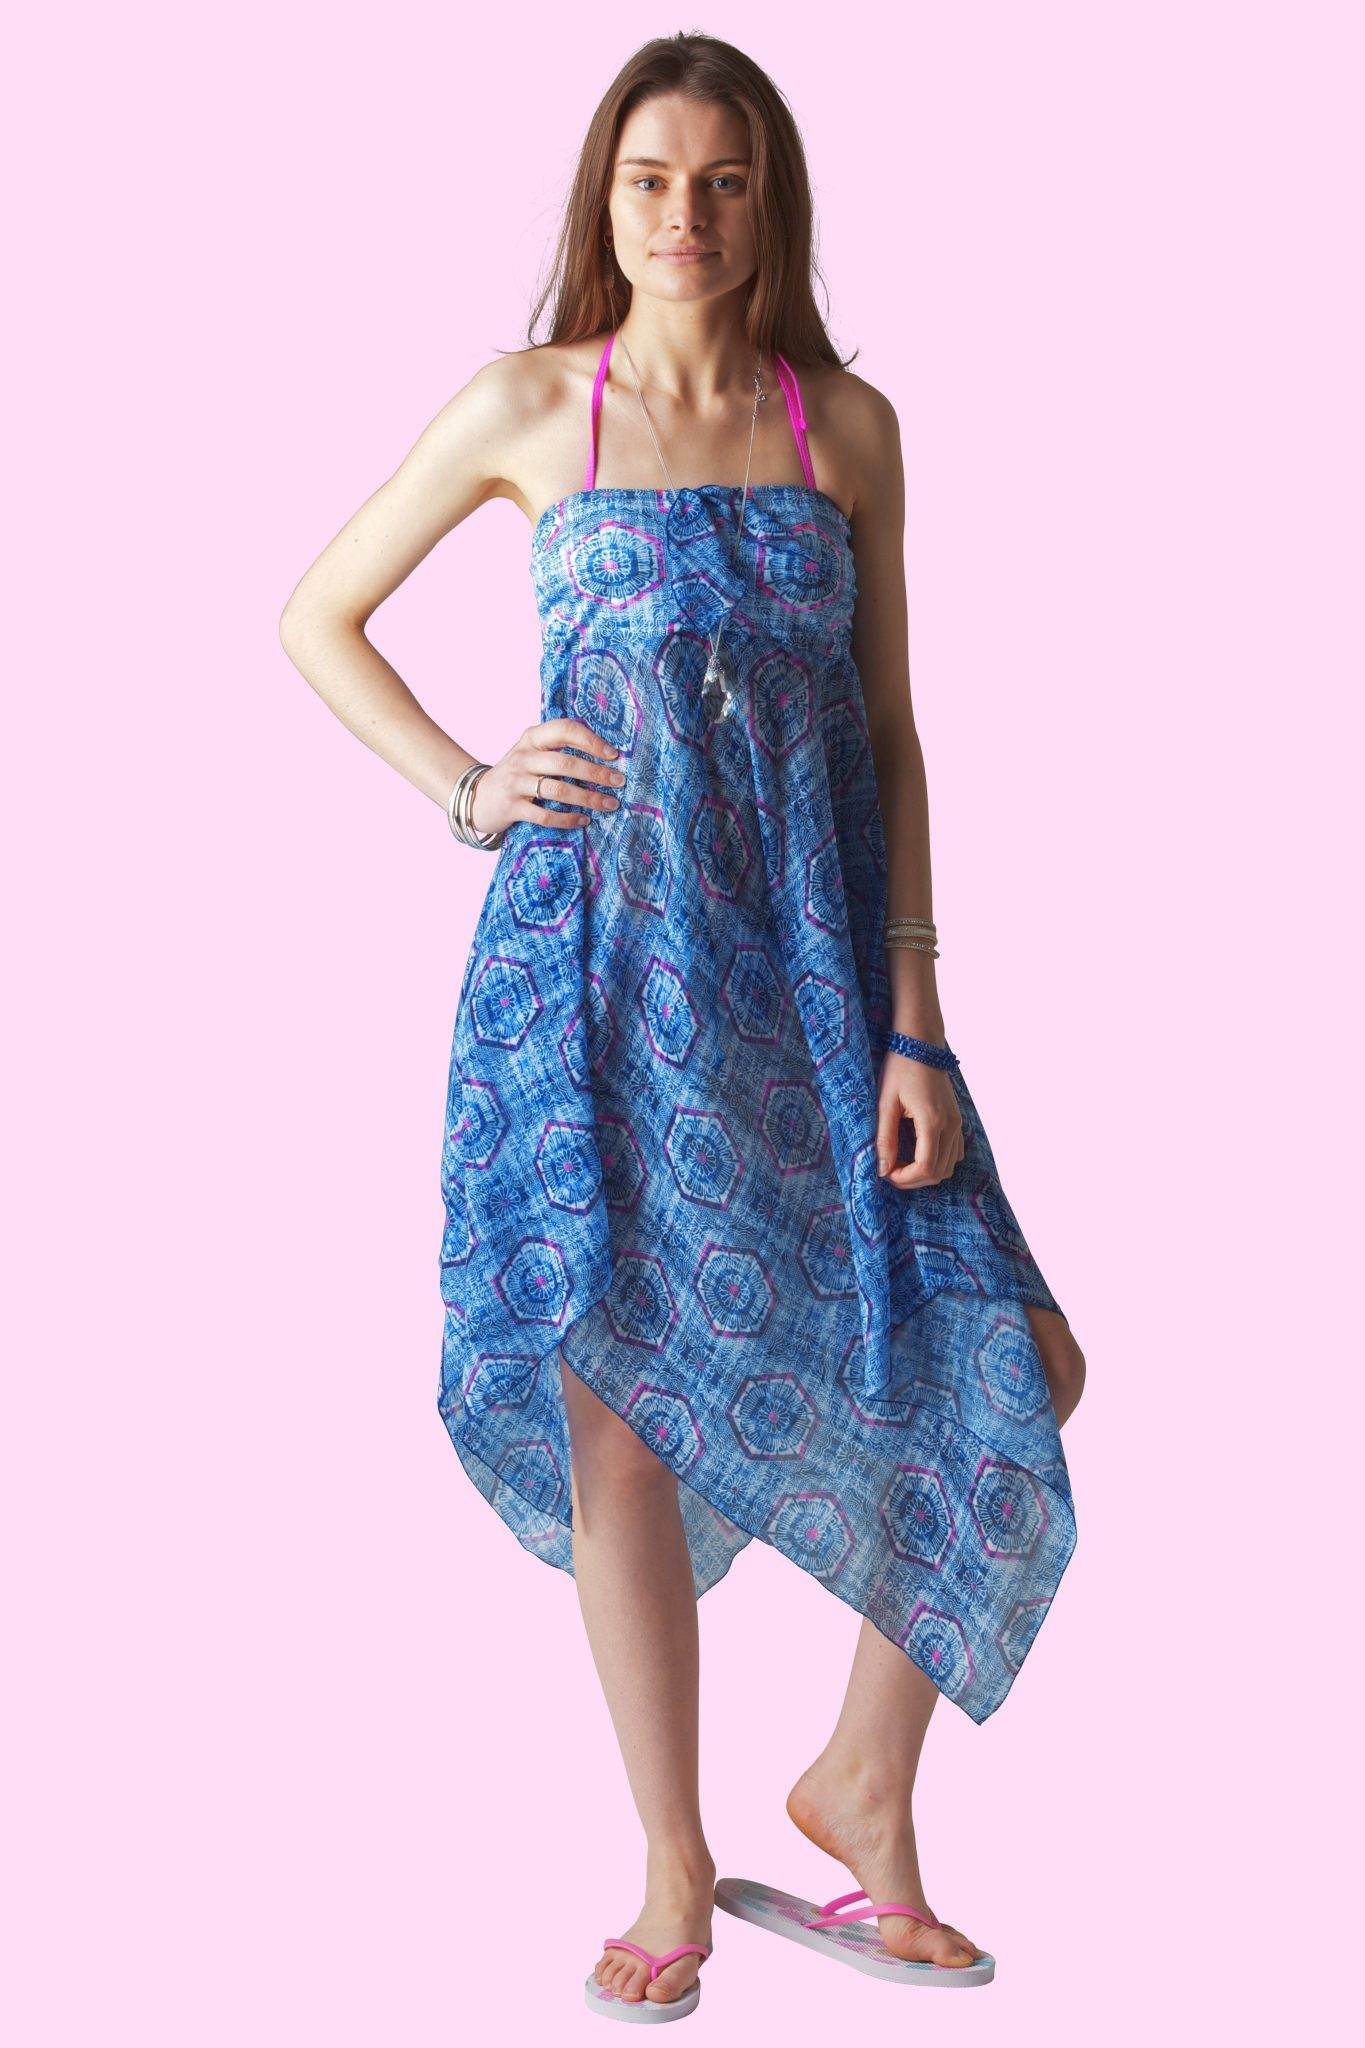 d2fe50f259 Aztec Blue - Sophie Sarongs Swimwear and Bathing suit cover up